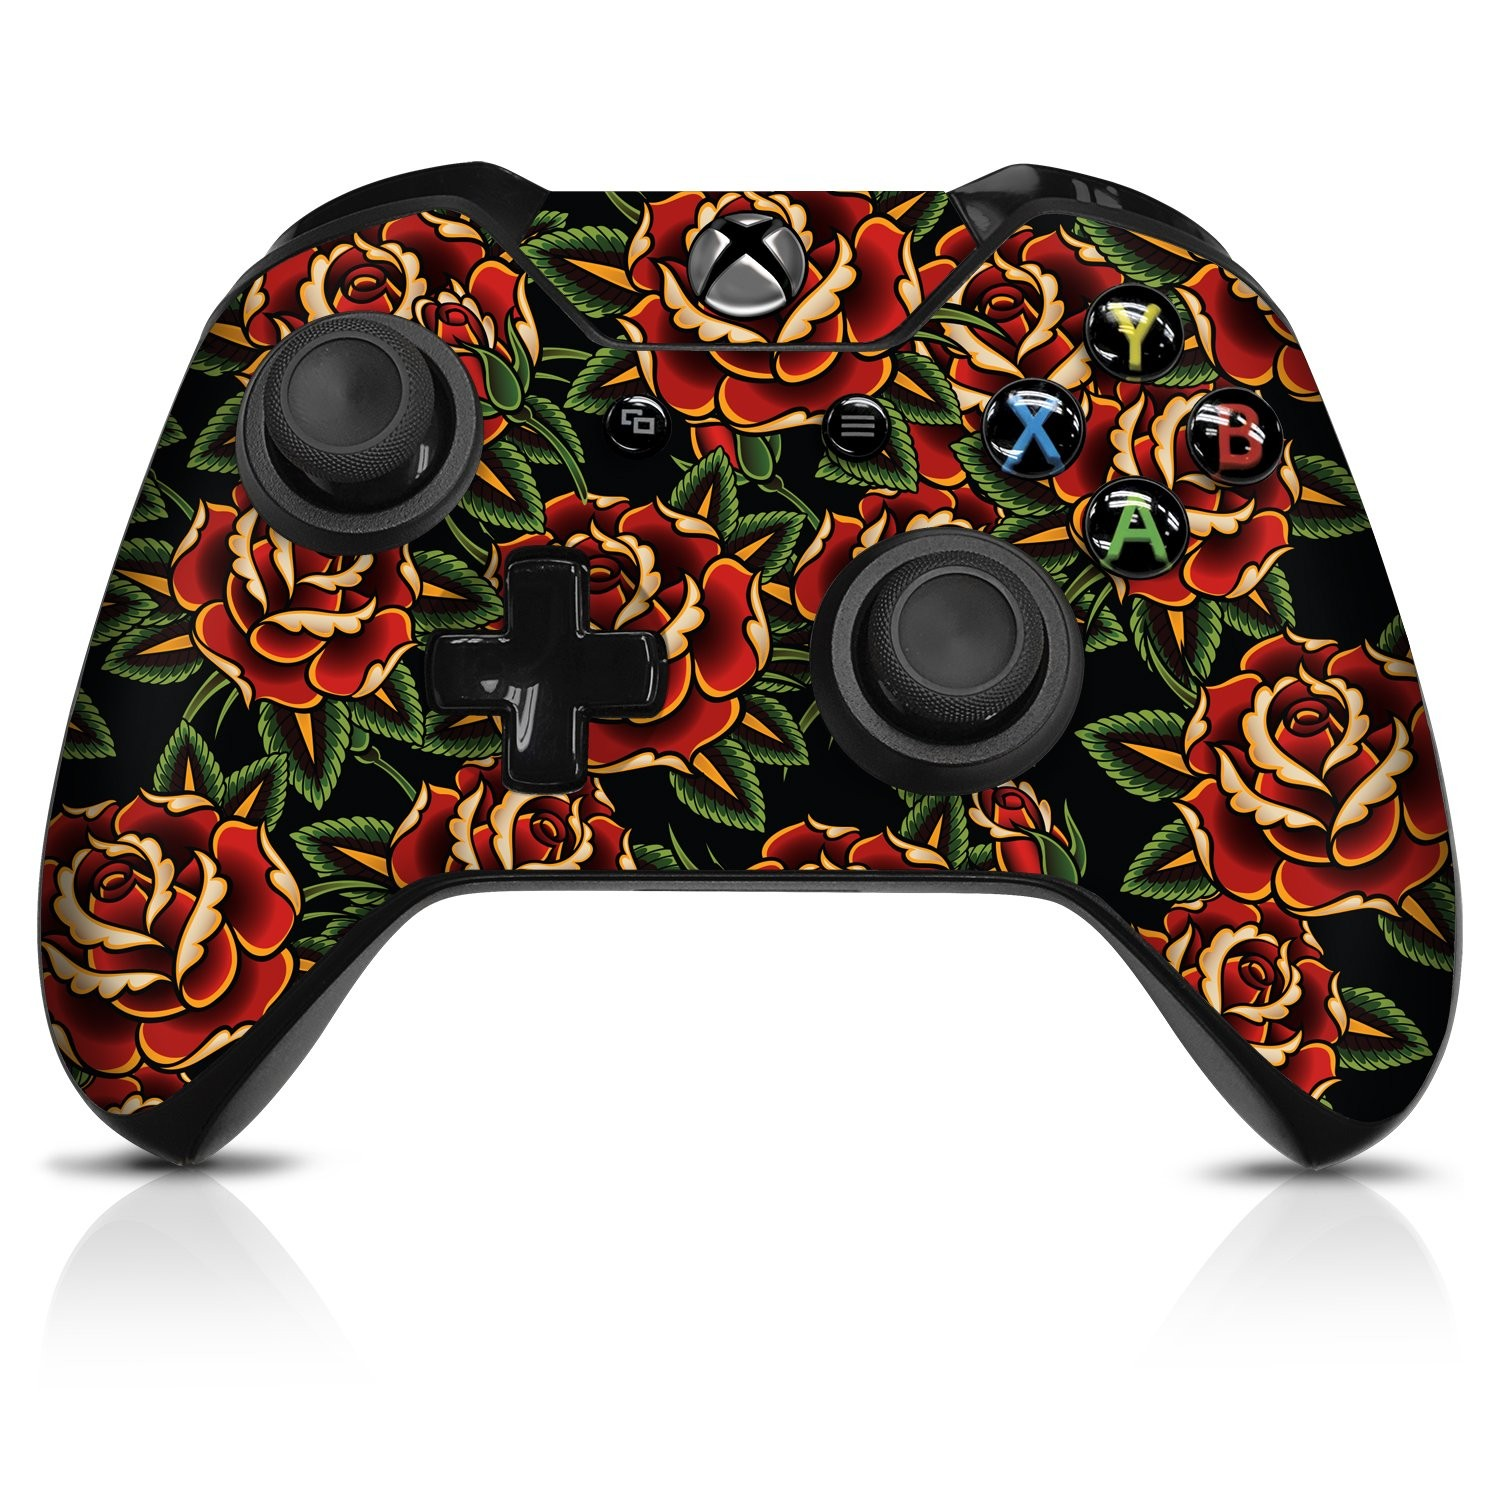 Roses  Xbox One Controller Skin - Officially Licensed by Xbox - Controller Gear